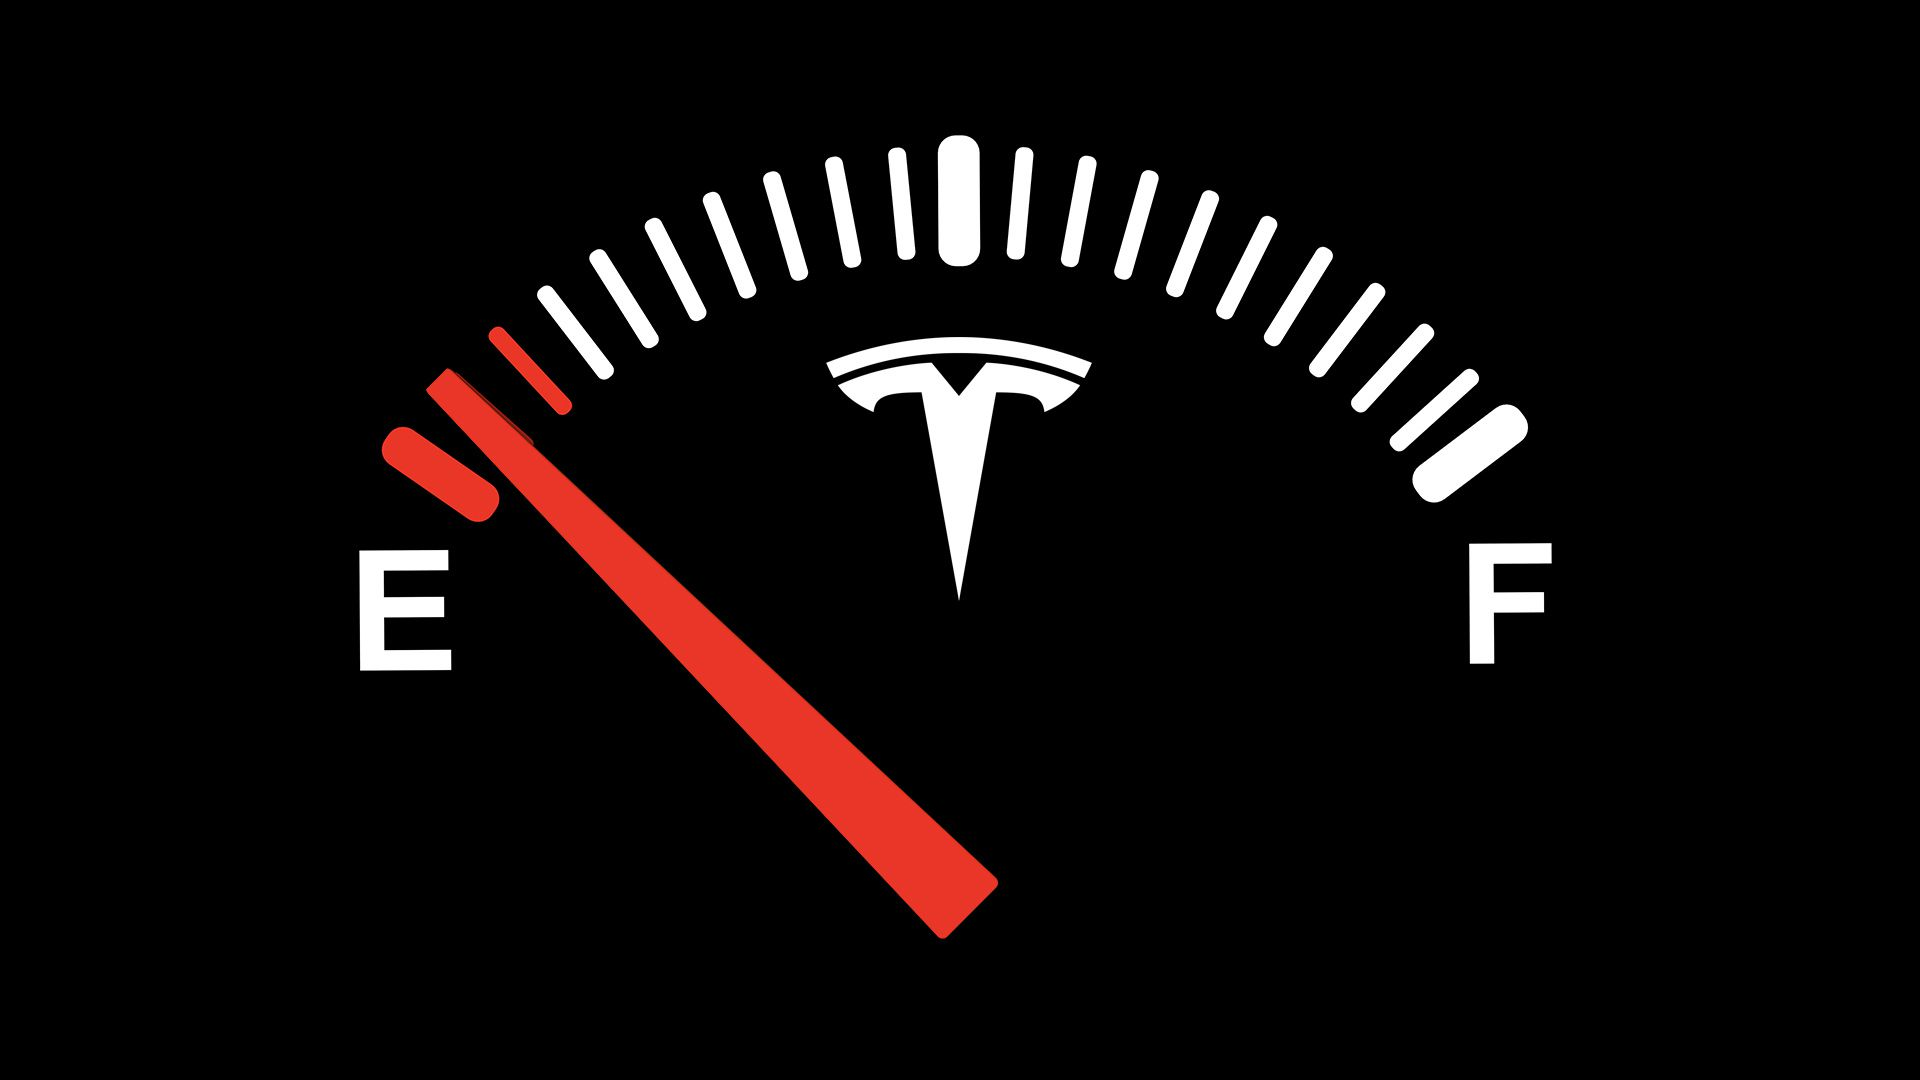 Tesla's other problem: catching up on autonomous tech - Axios